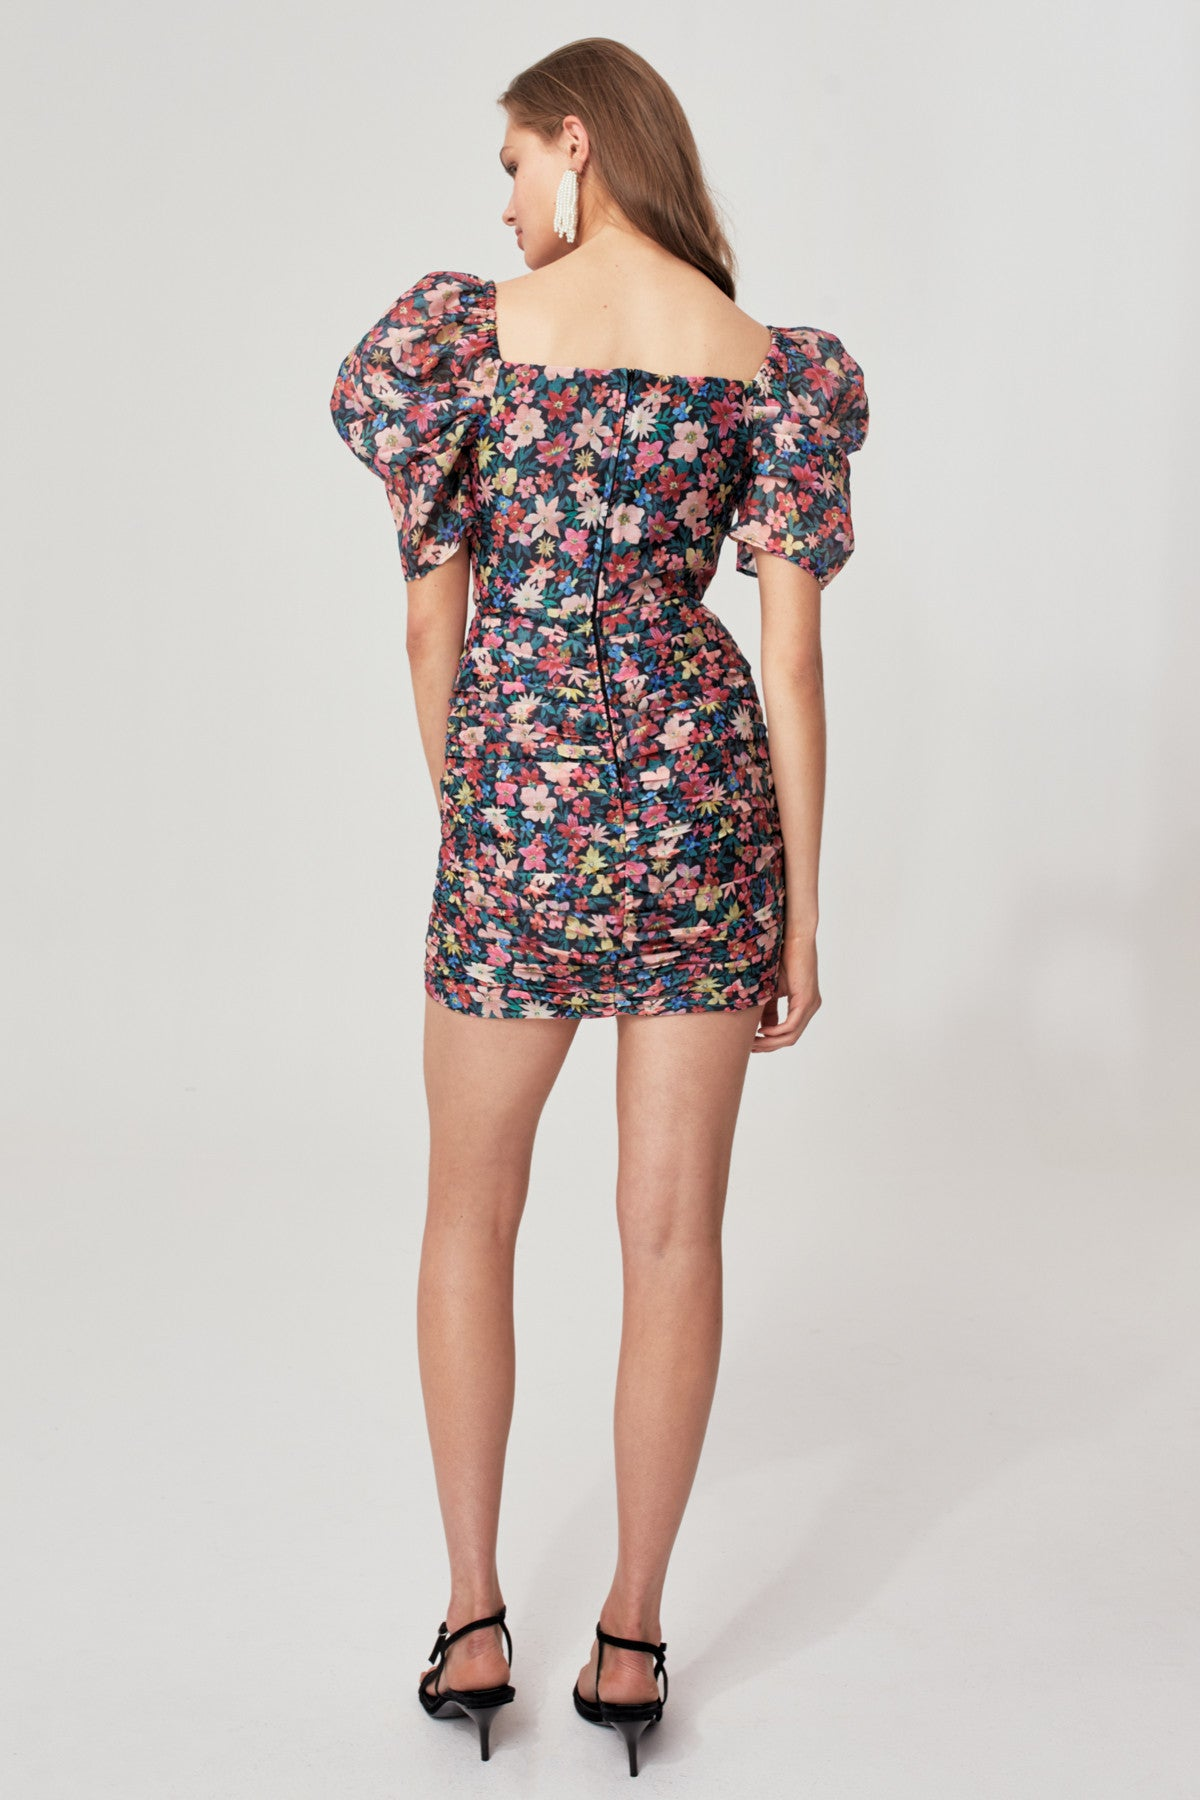 AND EVER MORE SHORT SLEEVE DRESS black garden floral